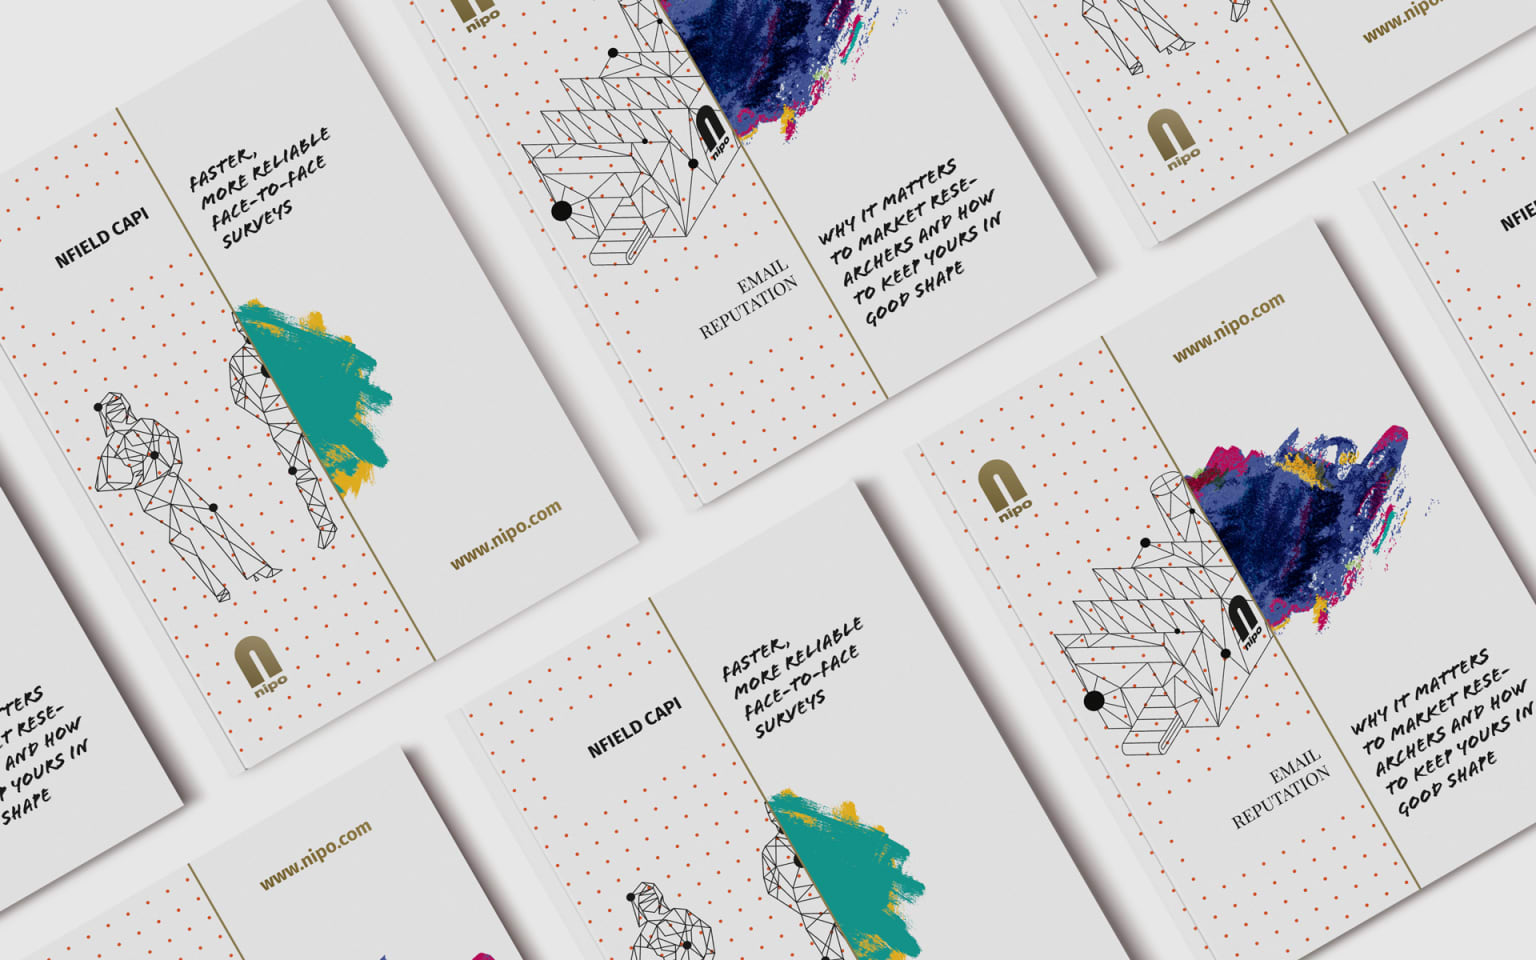 Nipo Software | Brochures, vector illustration & branded materials